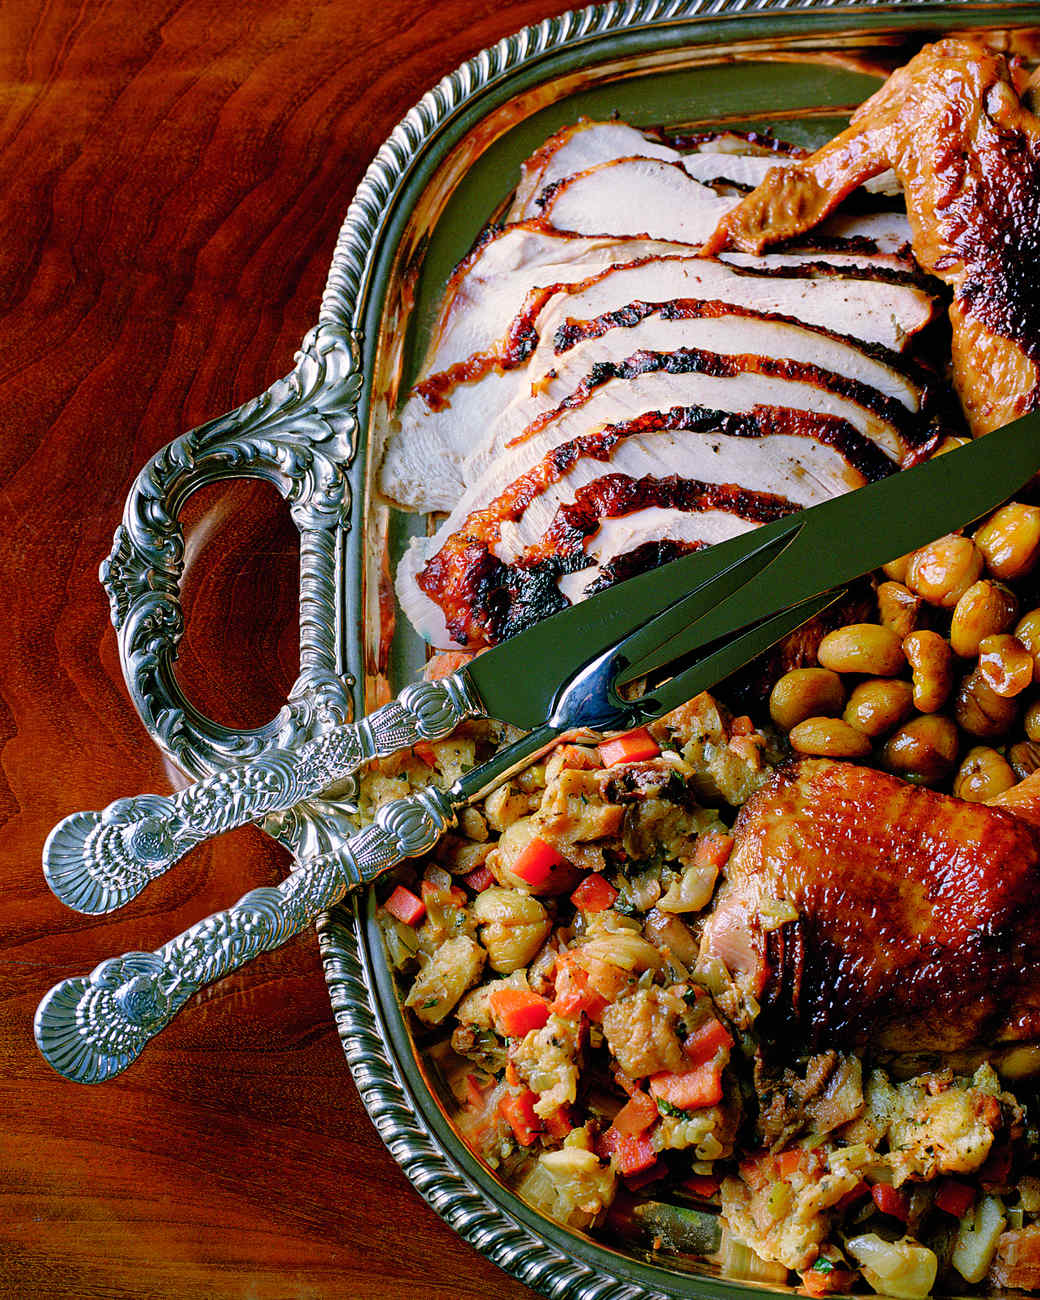 Roast Turkey with Cornbread Stuffing